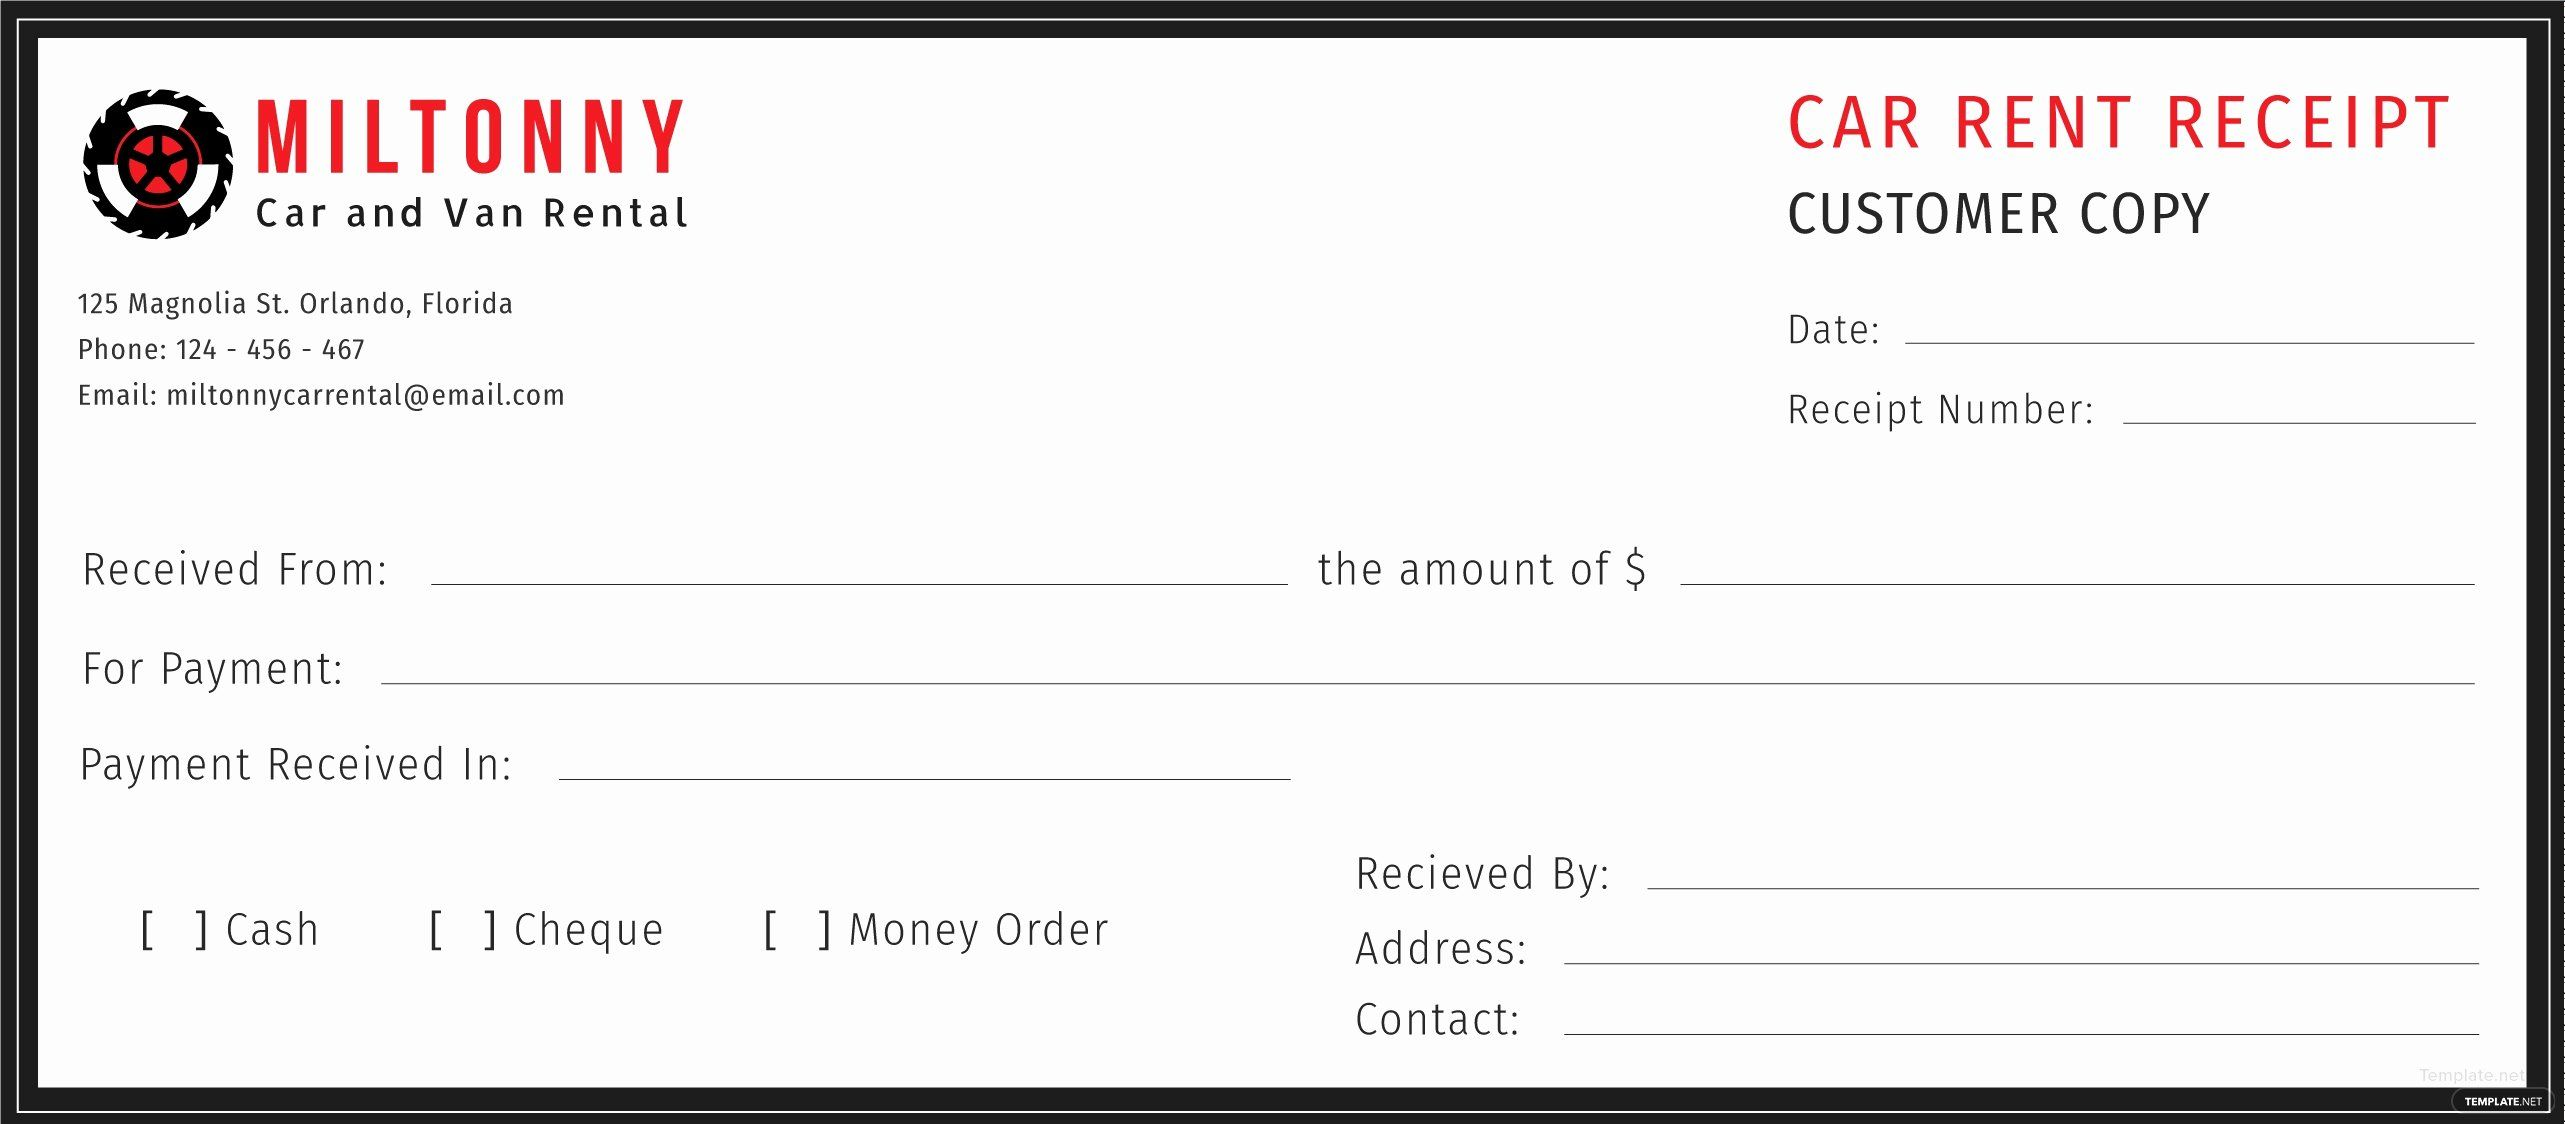 Car Rental Receipt Template Fresh Free Car Rent Receipt Template In Adobe Illustrator Receipt Template Free Receipt Template Coupon Template